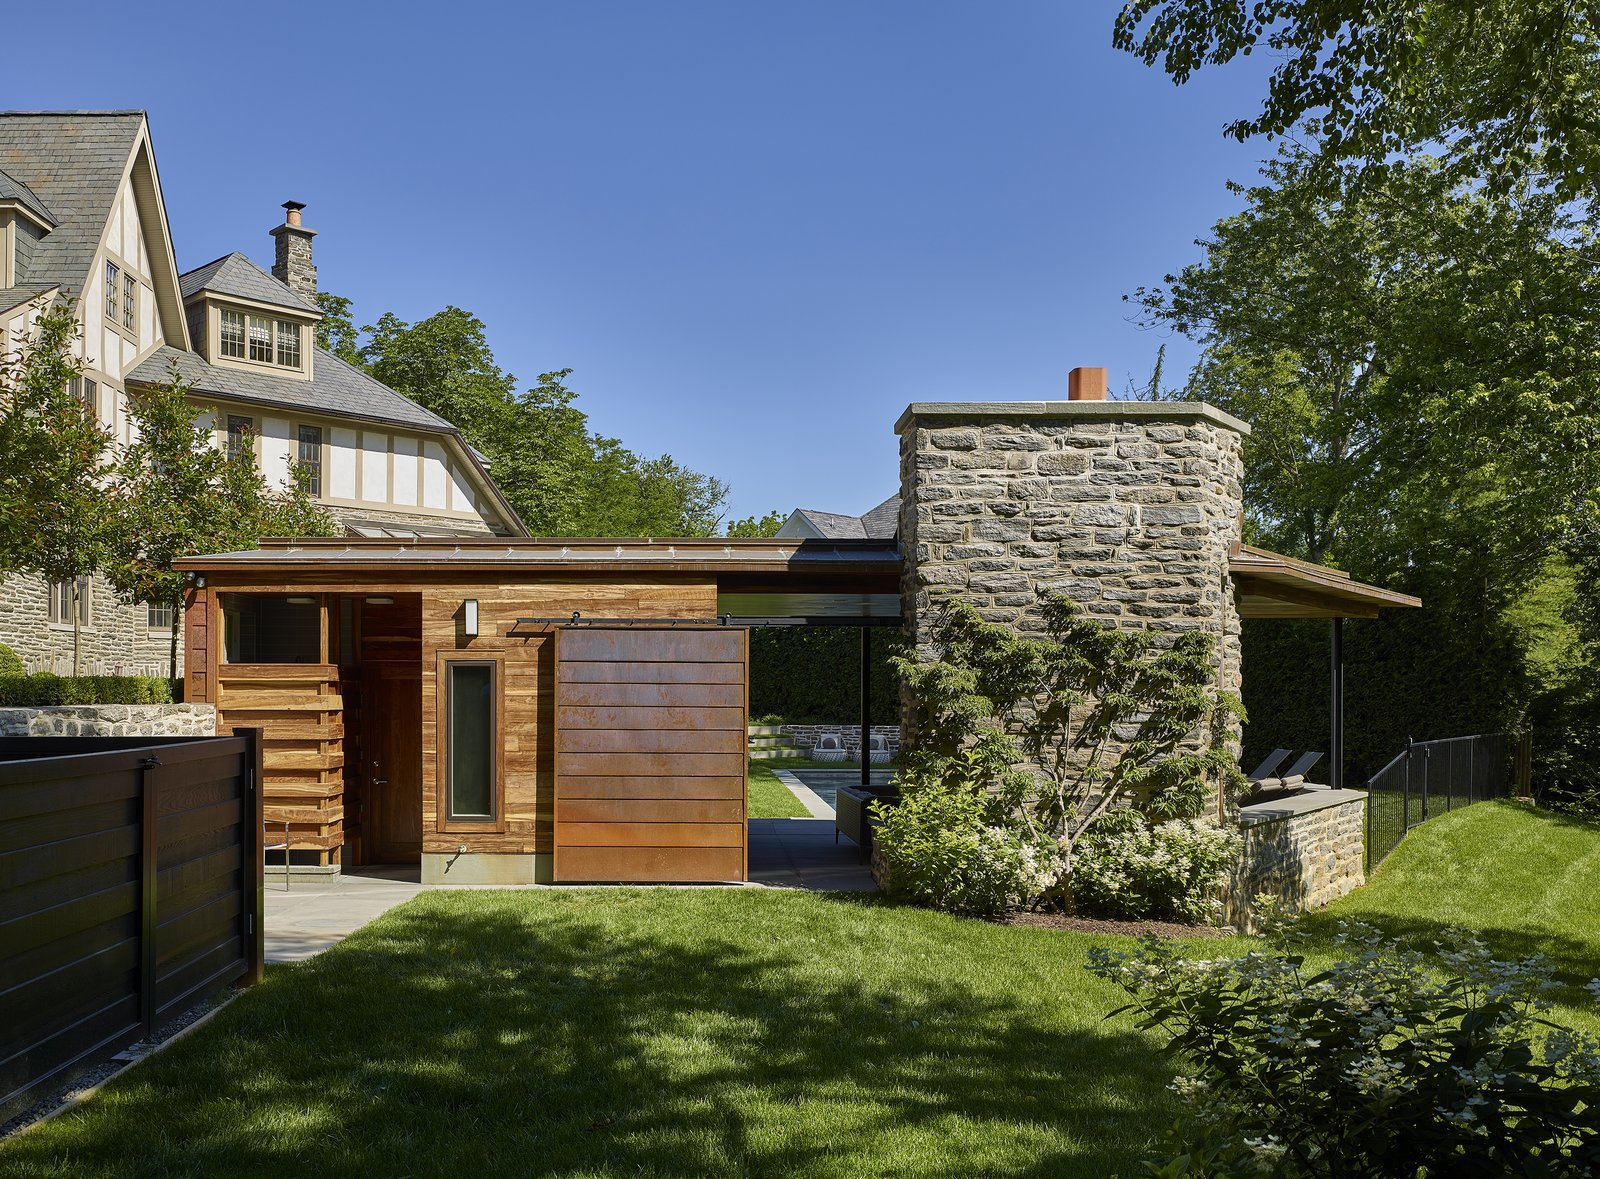 Entry to private spaces at rear of pool house. Tagged: Slope, Trees, Walkways, Hardscapes, Back Yard, Shrubs, Vertical, Standard Layout, Wood Burning, Metal, Exterior, Sliding, and Outdoor.  Best Outdoor Hardscapes Slope Photos from Modern Pool House for Sloped Site